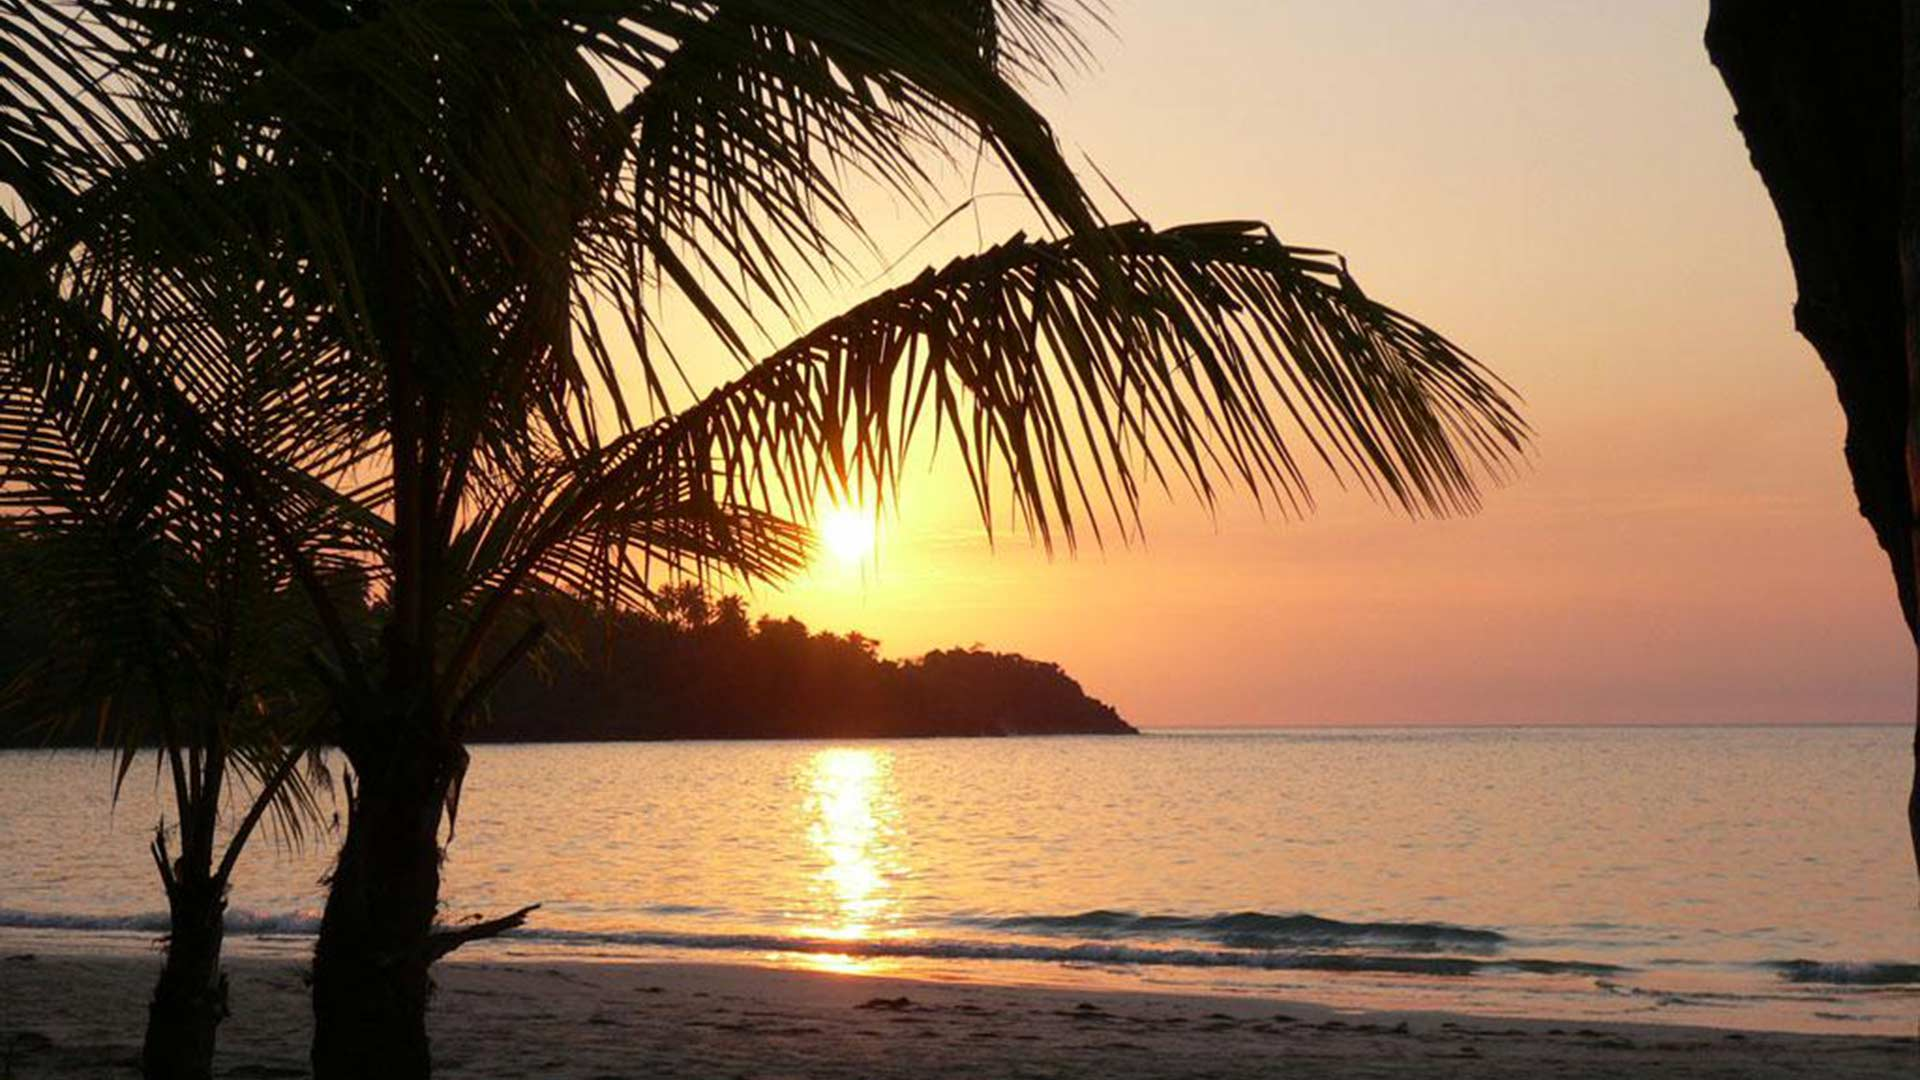 A perfect sunset in the Dominican Republic